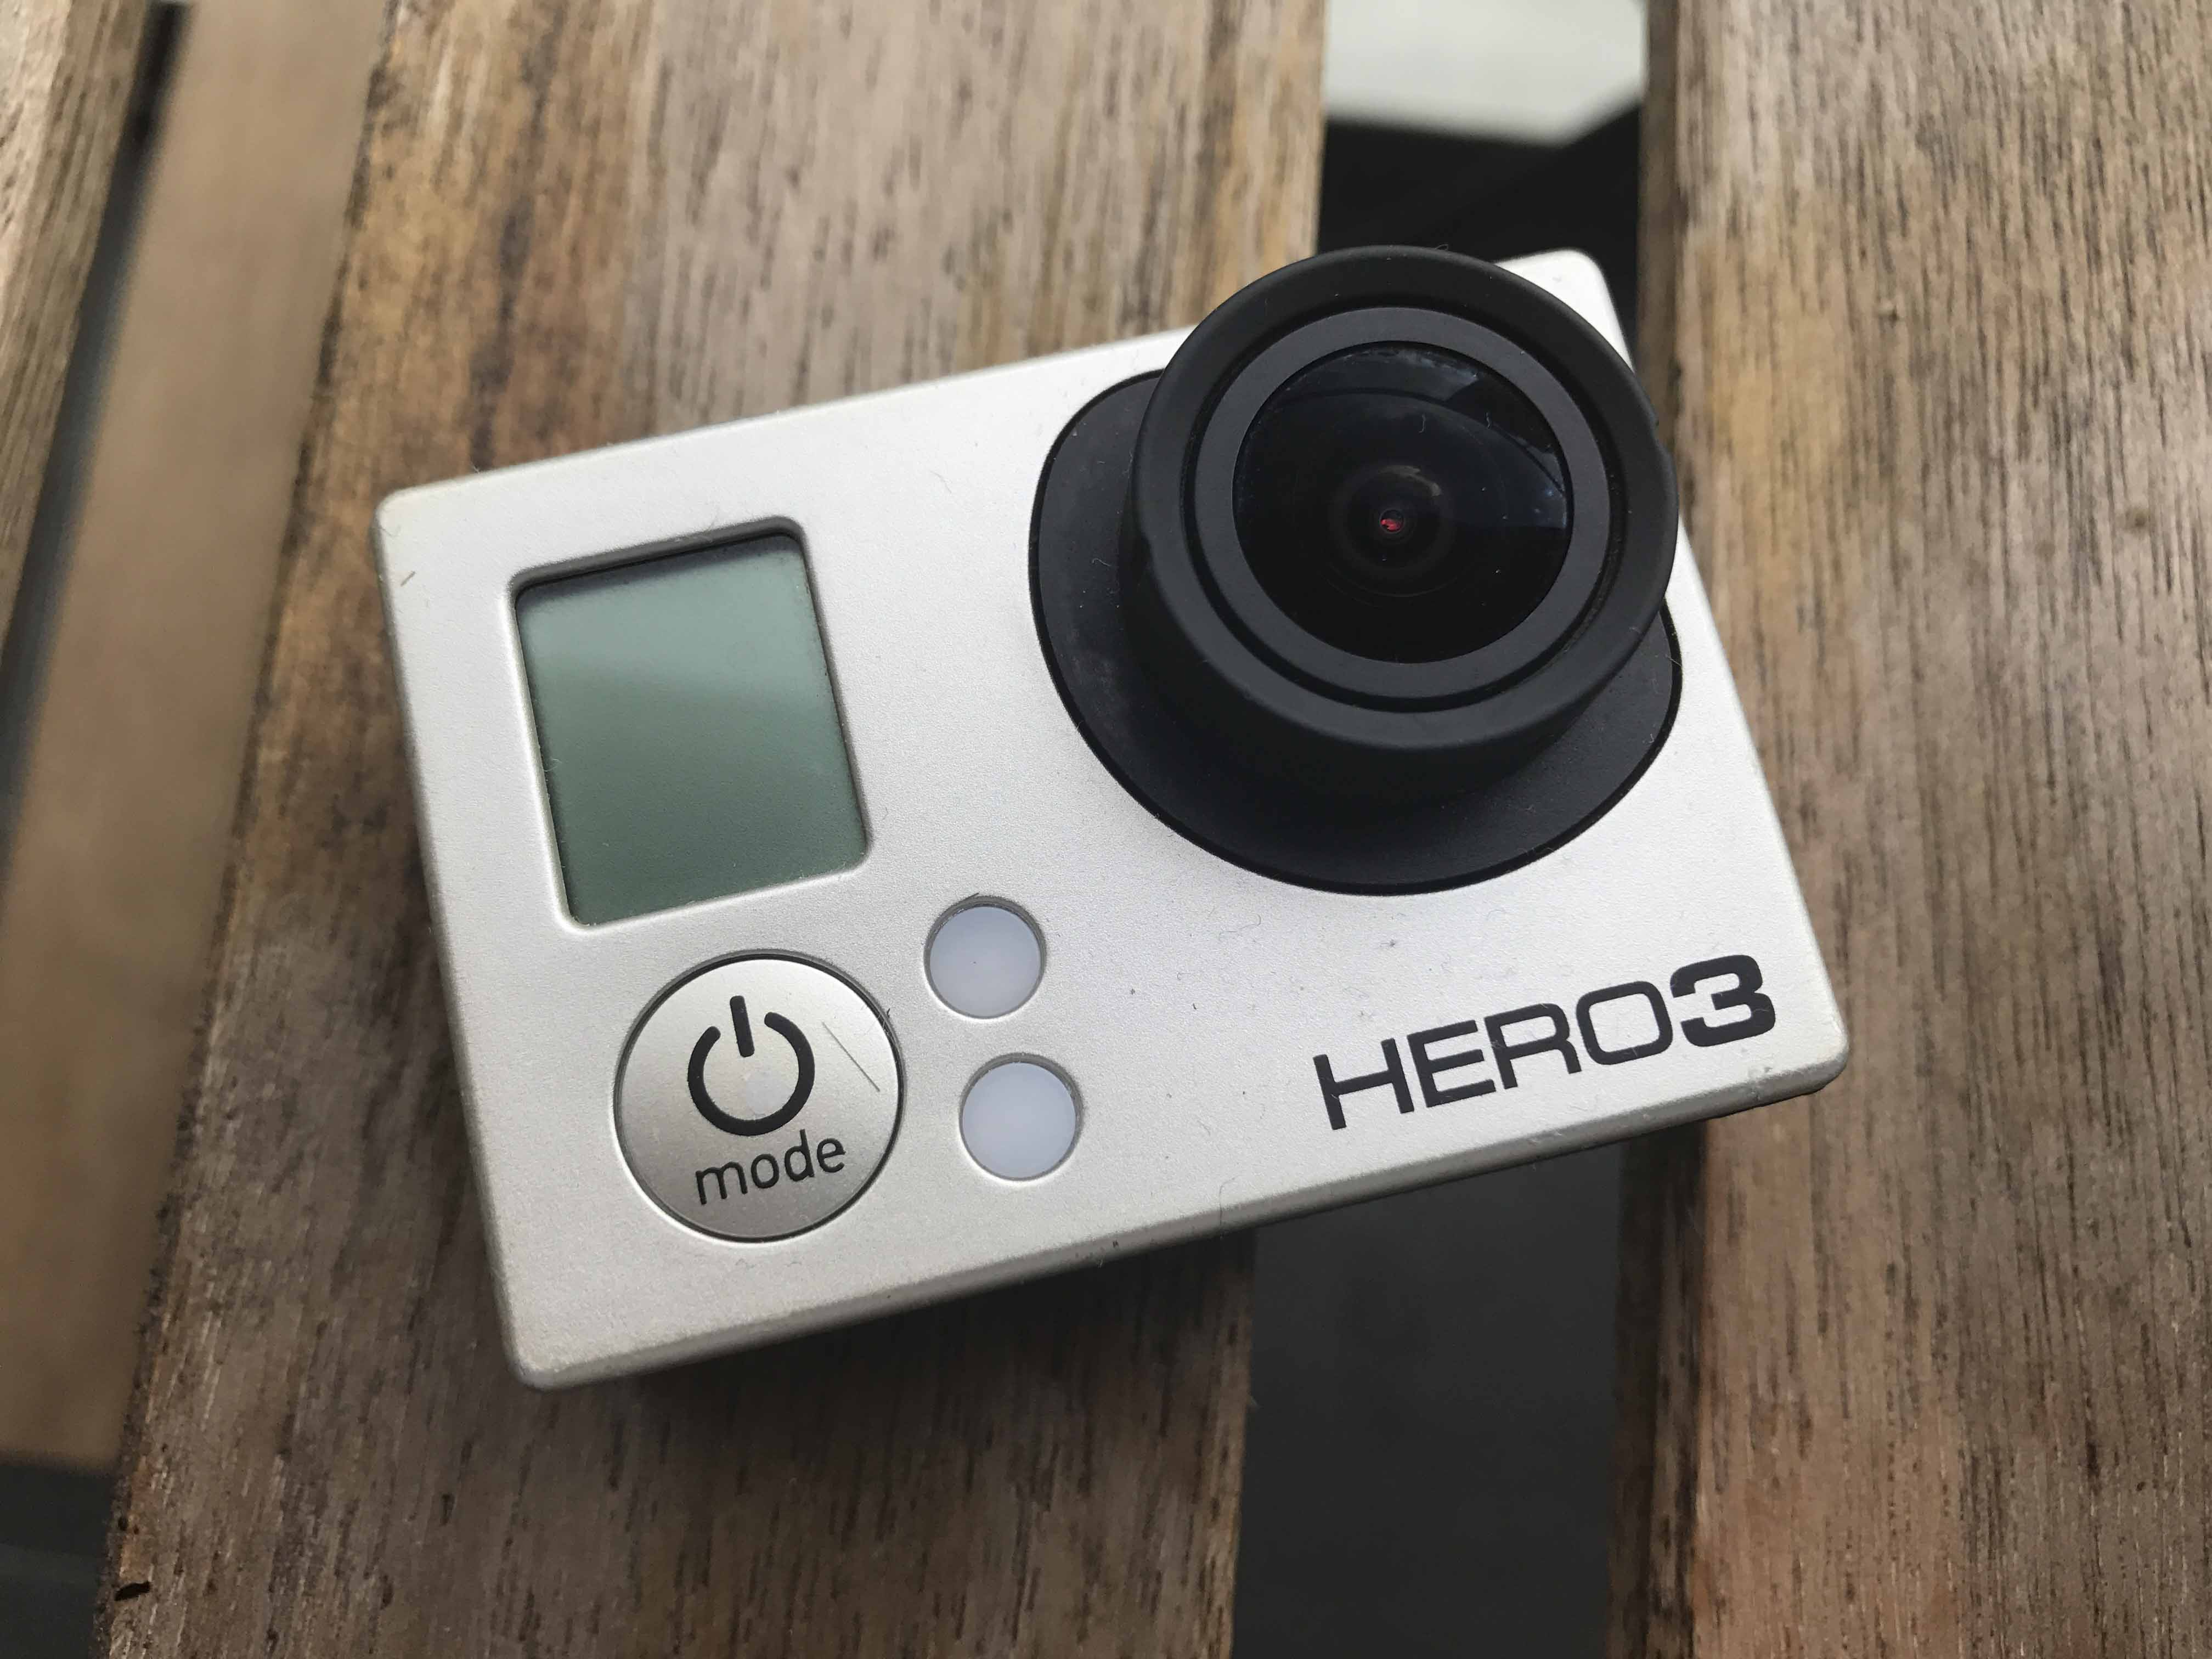 GoPro Hero 3 Give Away – Why Am I Giving Away My Old Stuff?